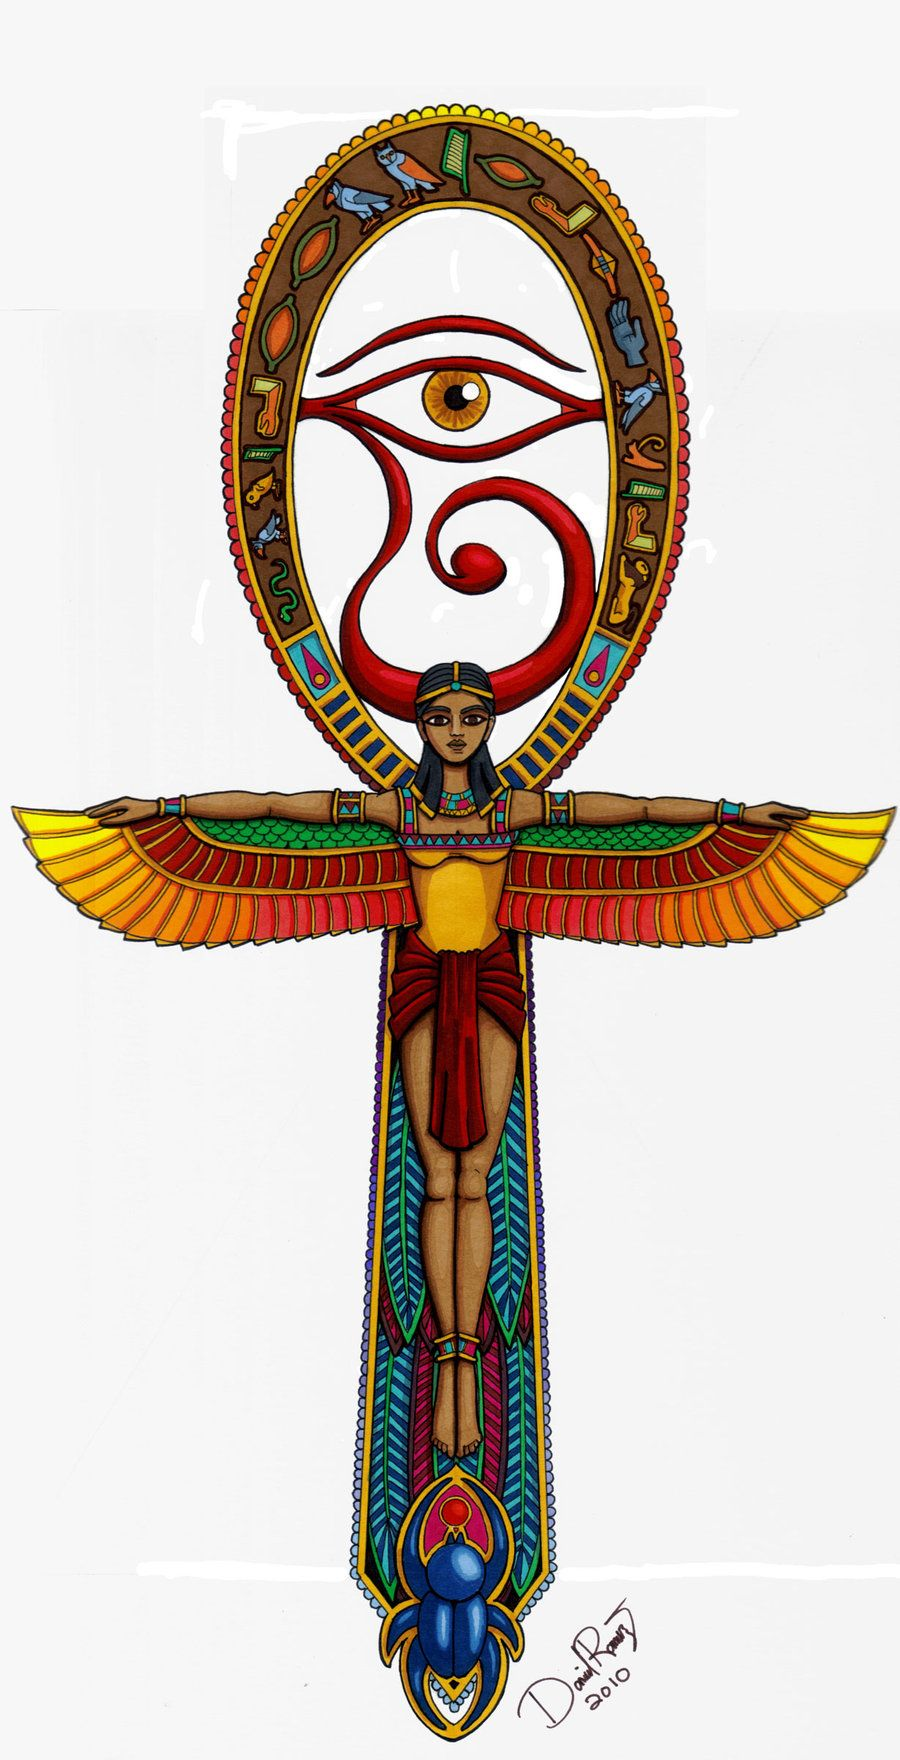 d8475bd9162b0 ankh | Ankh Tattoo by CoquiJams on deviantART | i like | Egyptian ...